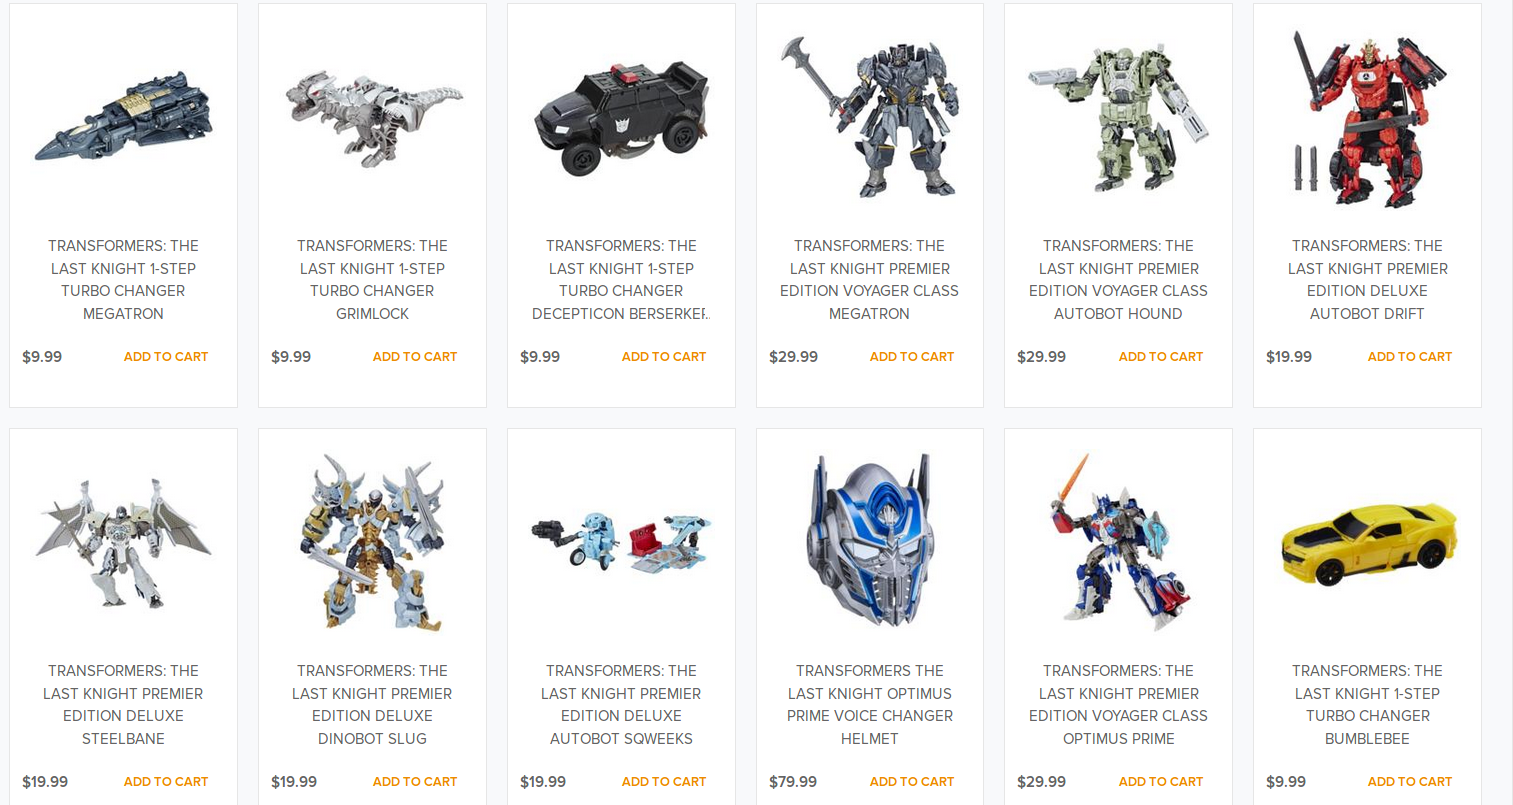 Transformers News: Wave 2 of Transformers: The Last Knight Toys on HTS.com